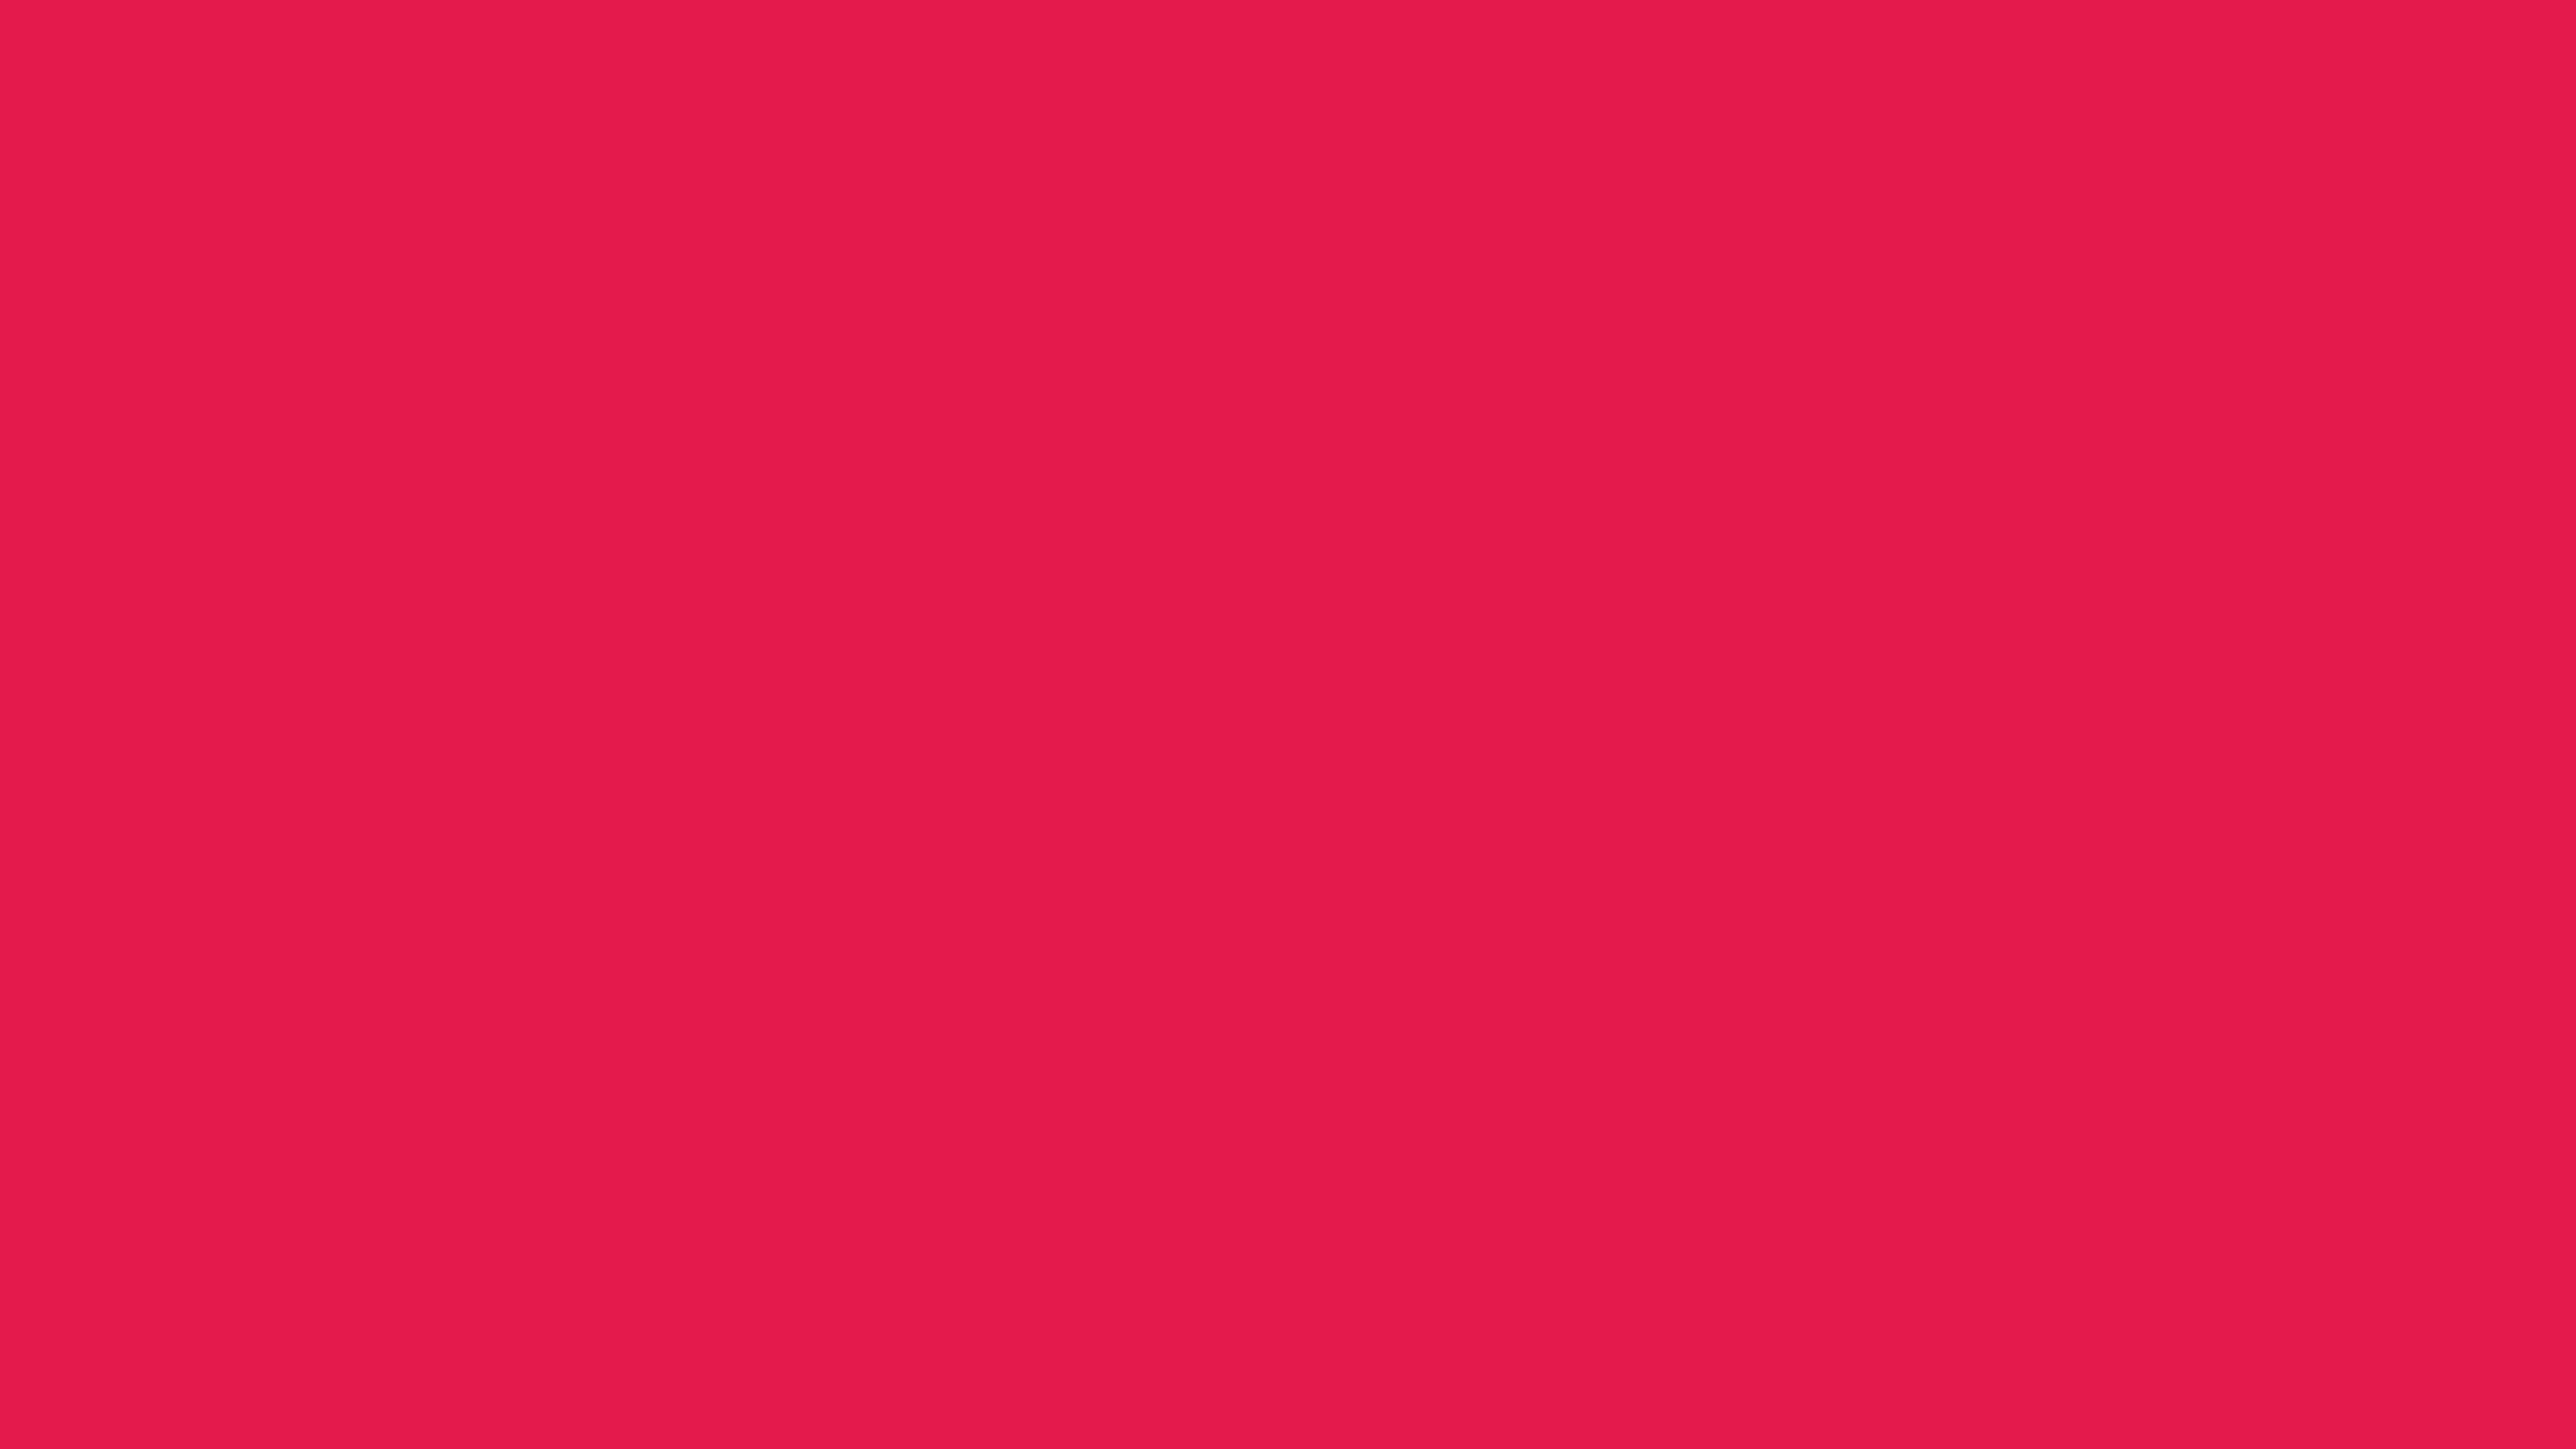 4096x2304 Spanish Crimson Solid Color Background